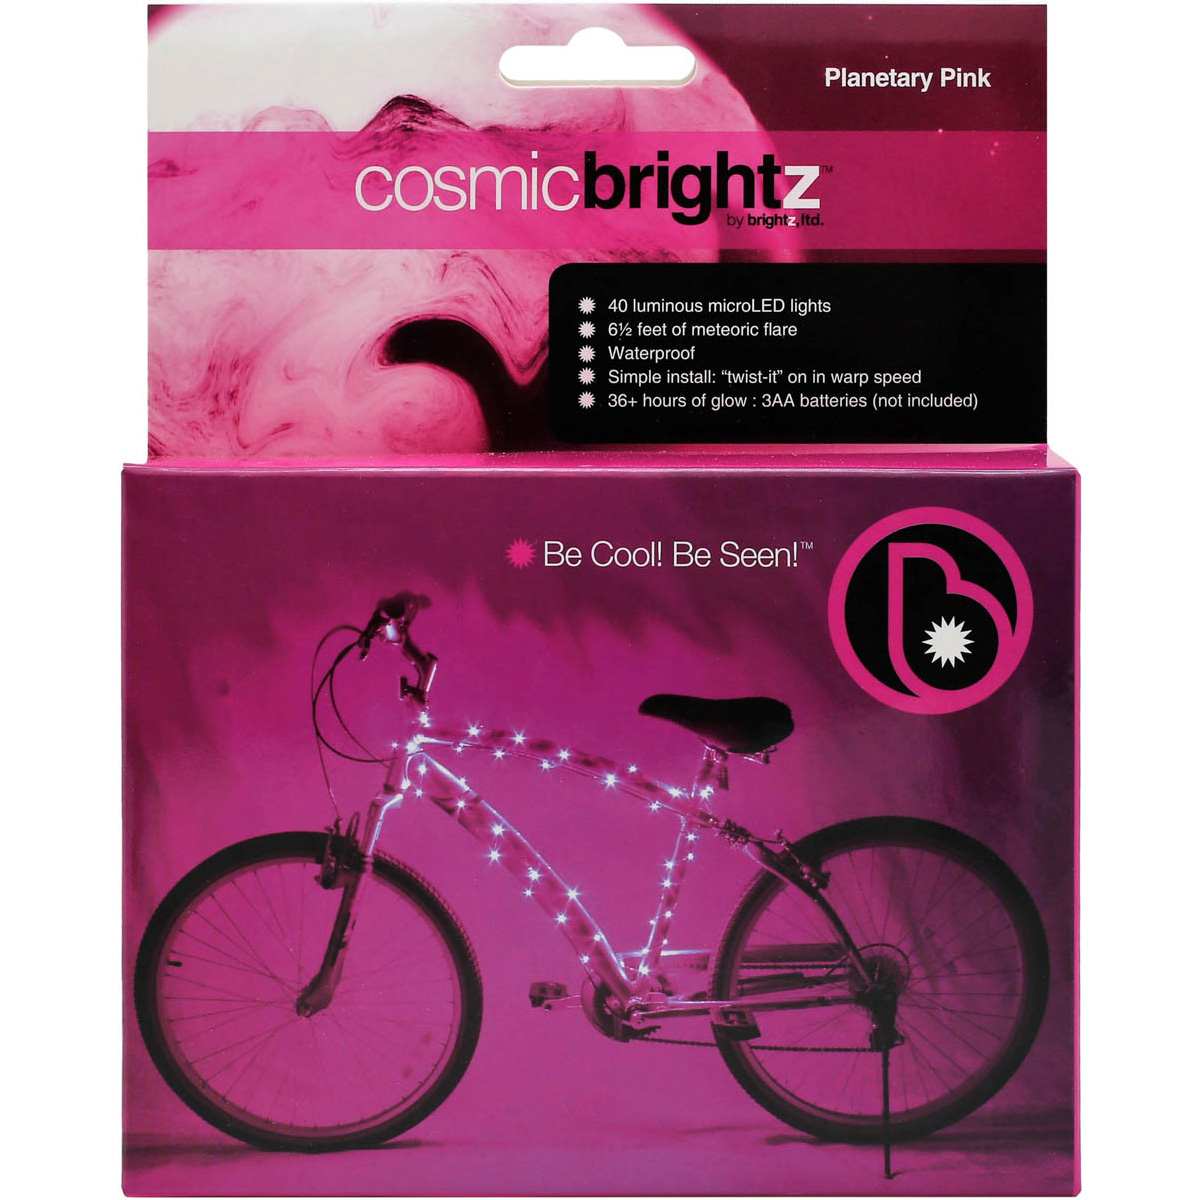 Image For Brightz® Cosmic Brightz Pink